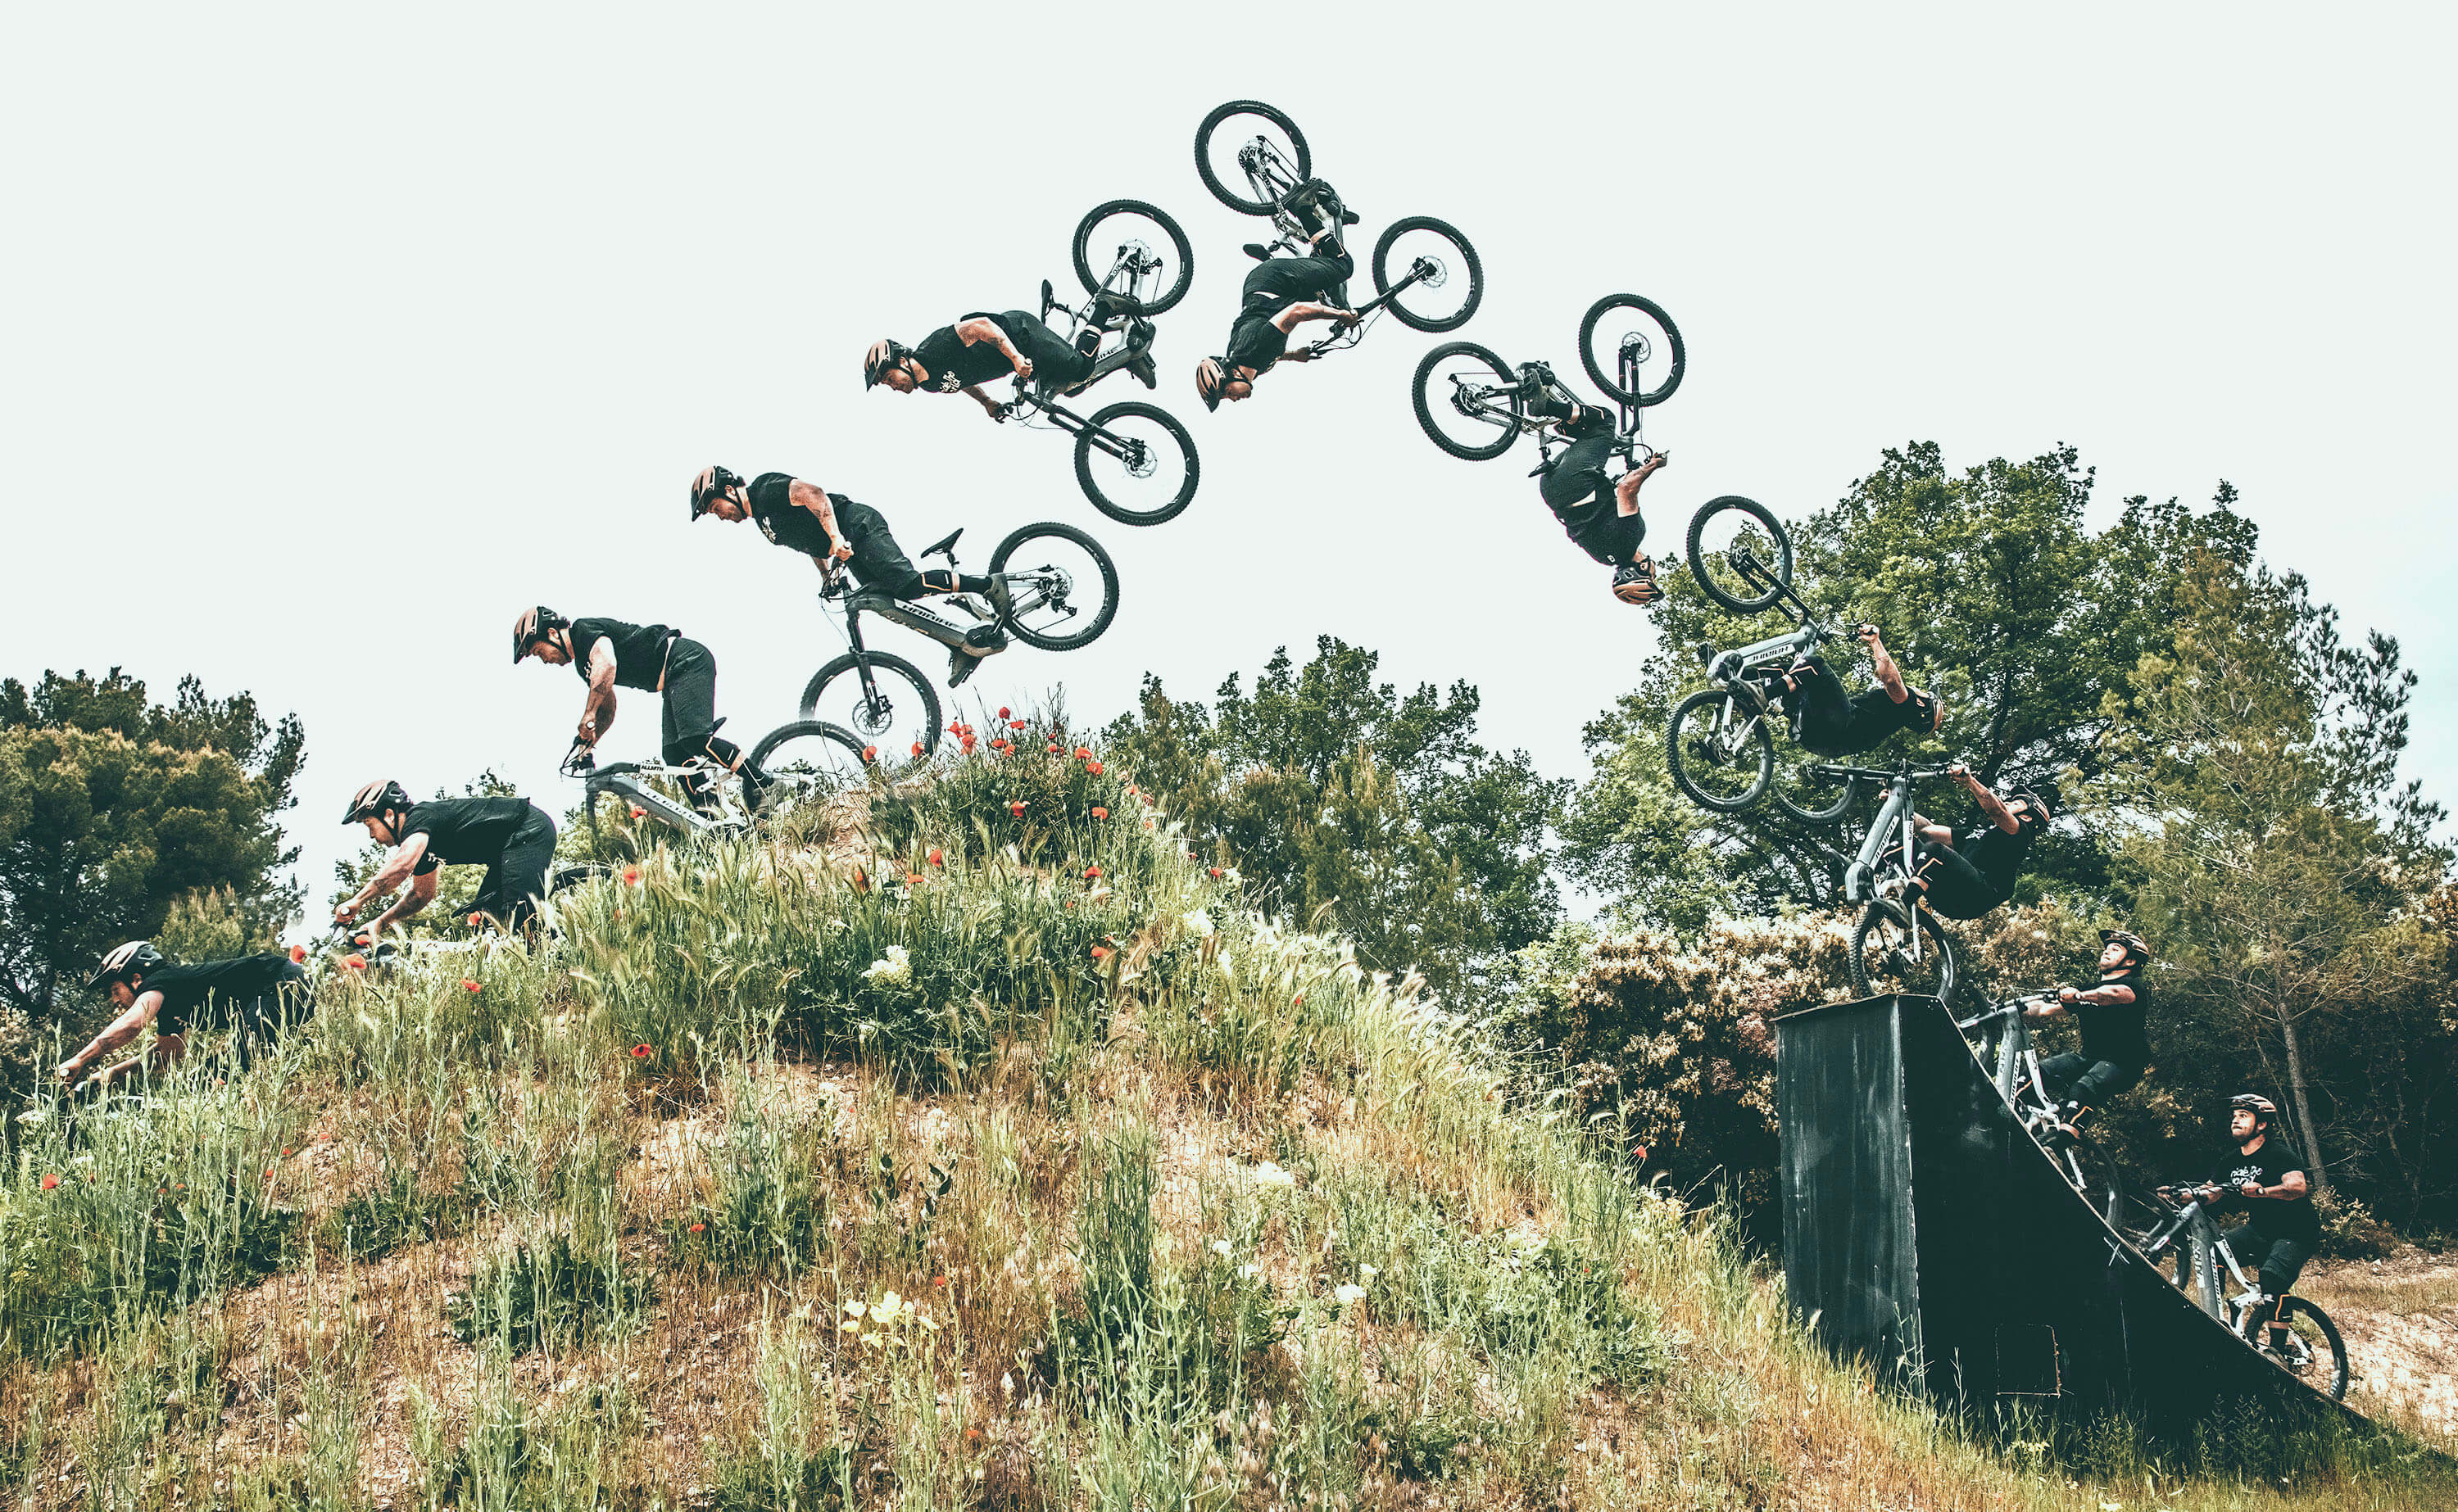 Haibike Hero Yannick Granieri doing a backflip